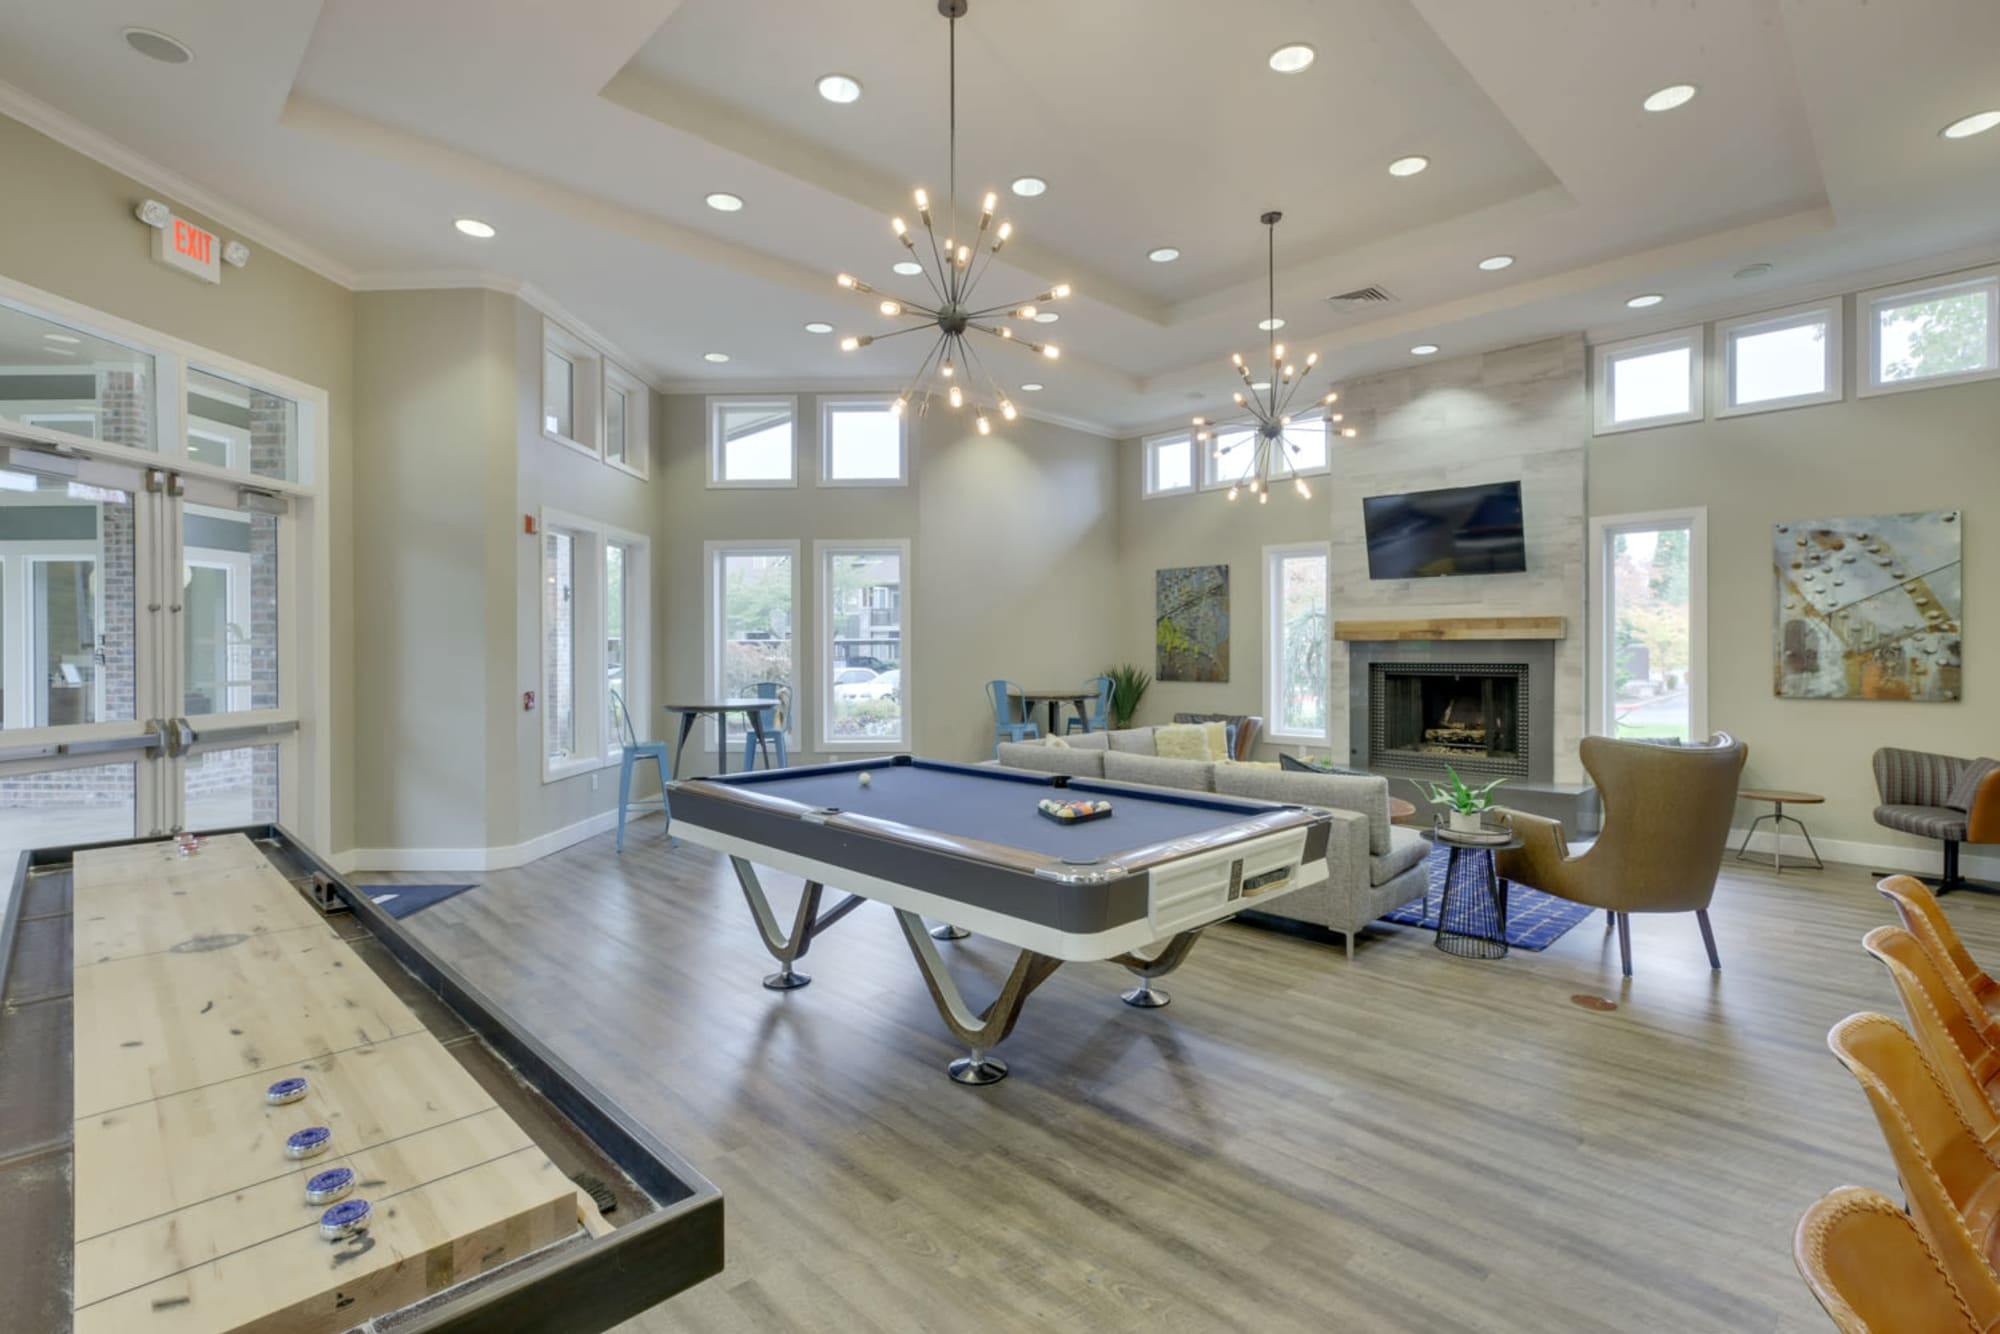 The clubhouse pool table on hardwood floors at The Grove at Orenco Station in Hillsboro, Oregon